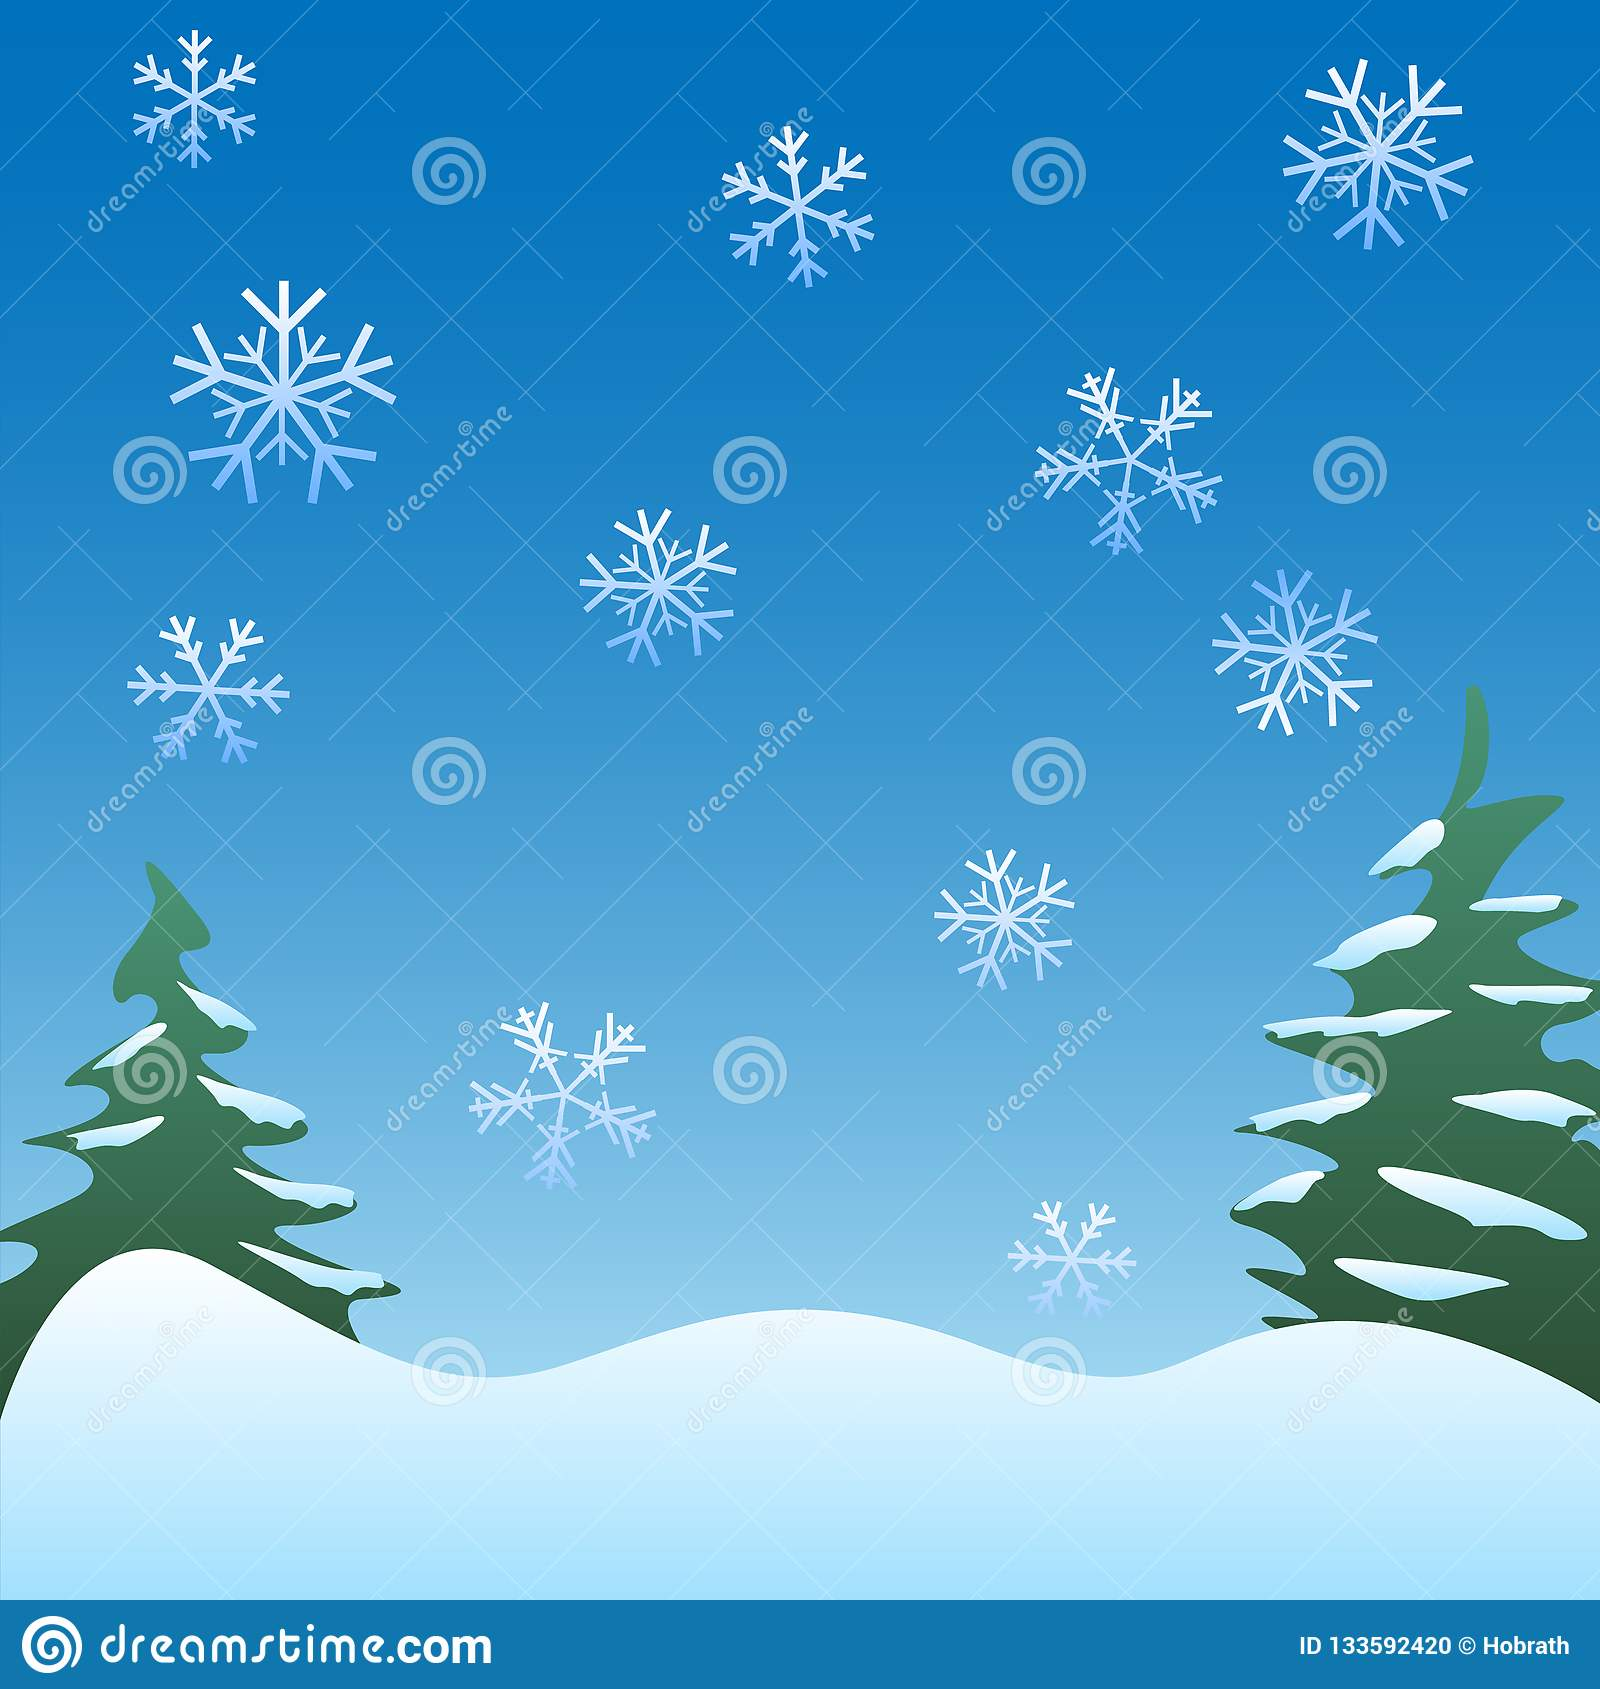 Peaceful winter scene background with pine trees, gentle snowflakes, and soft rolling hills vector Illustration